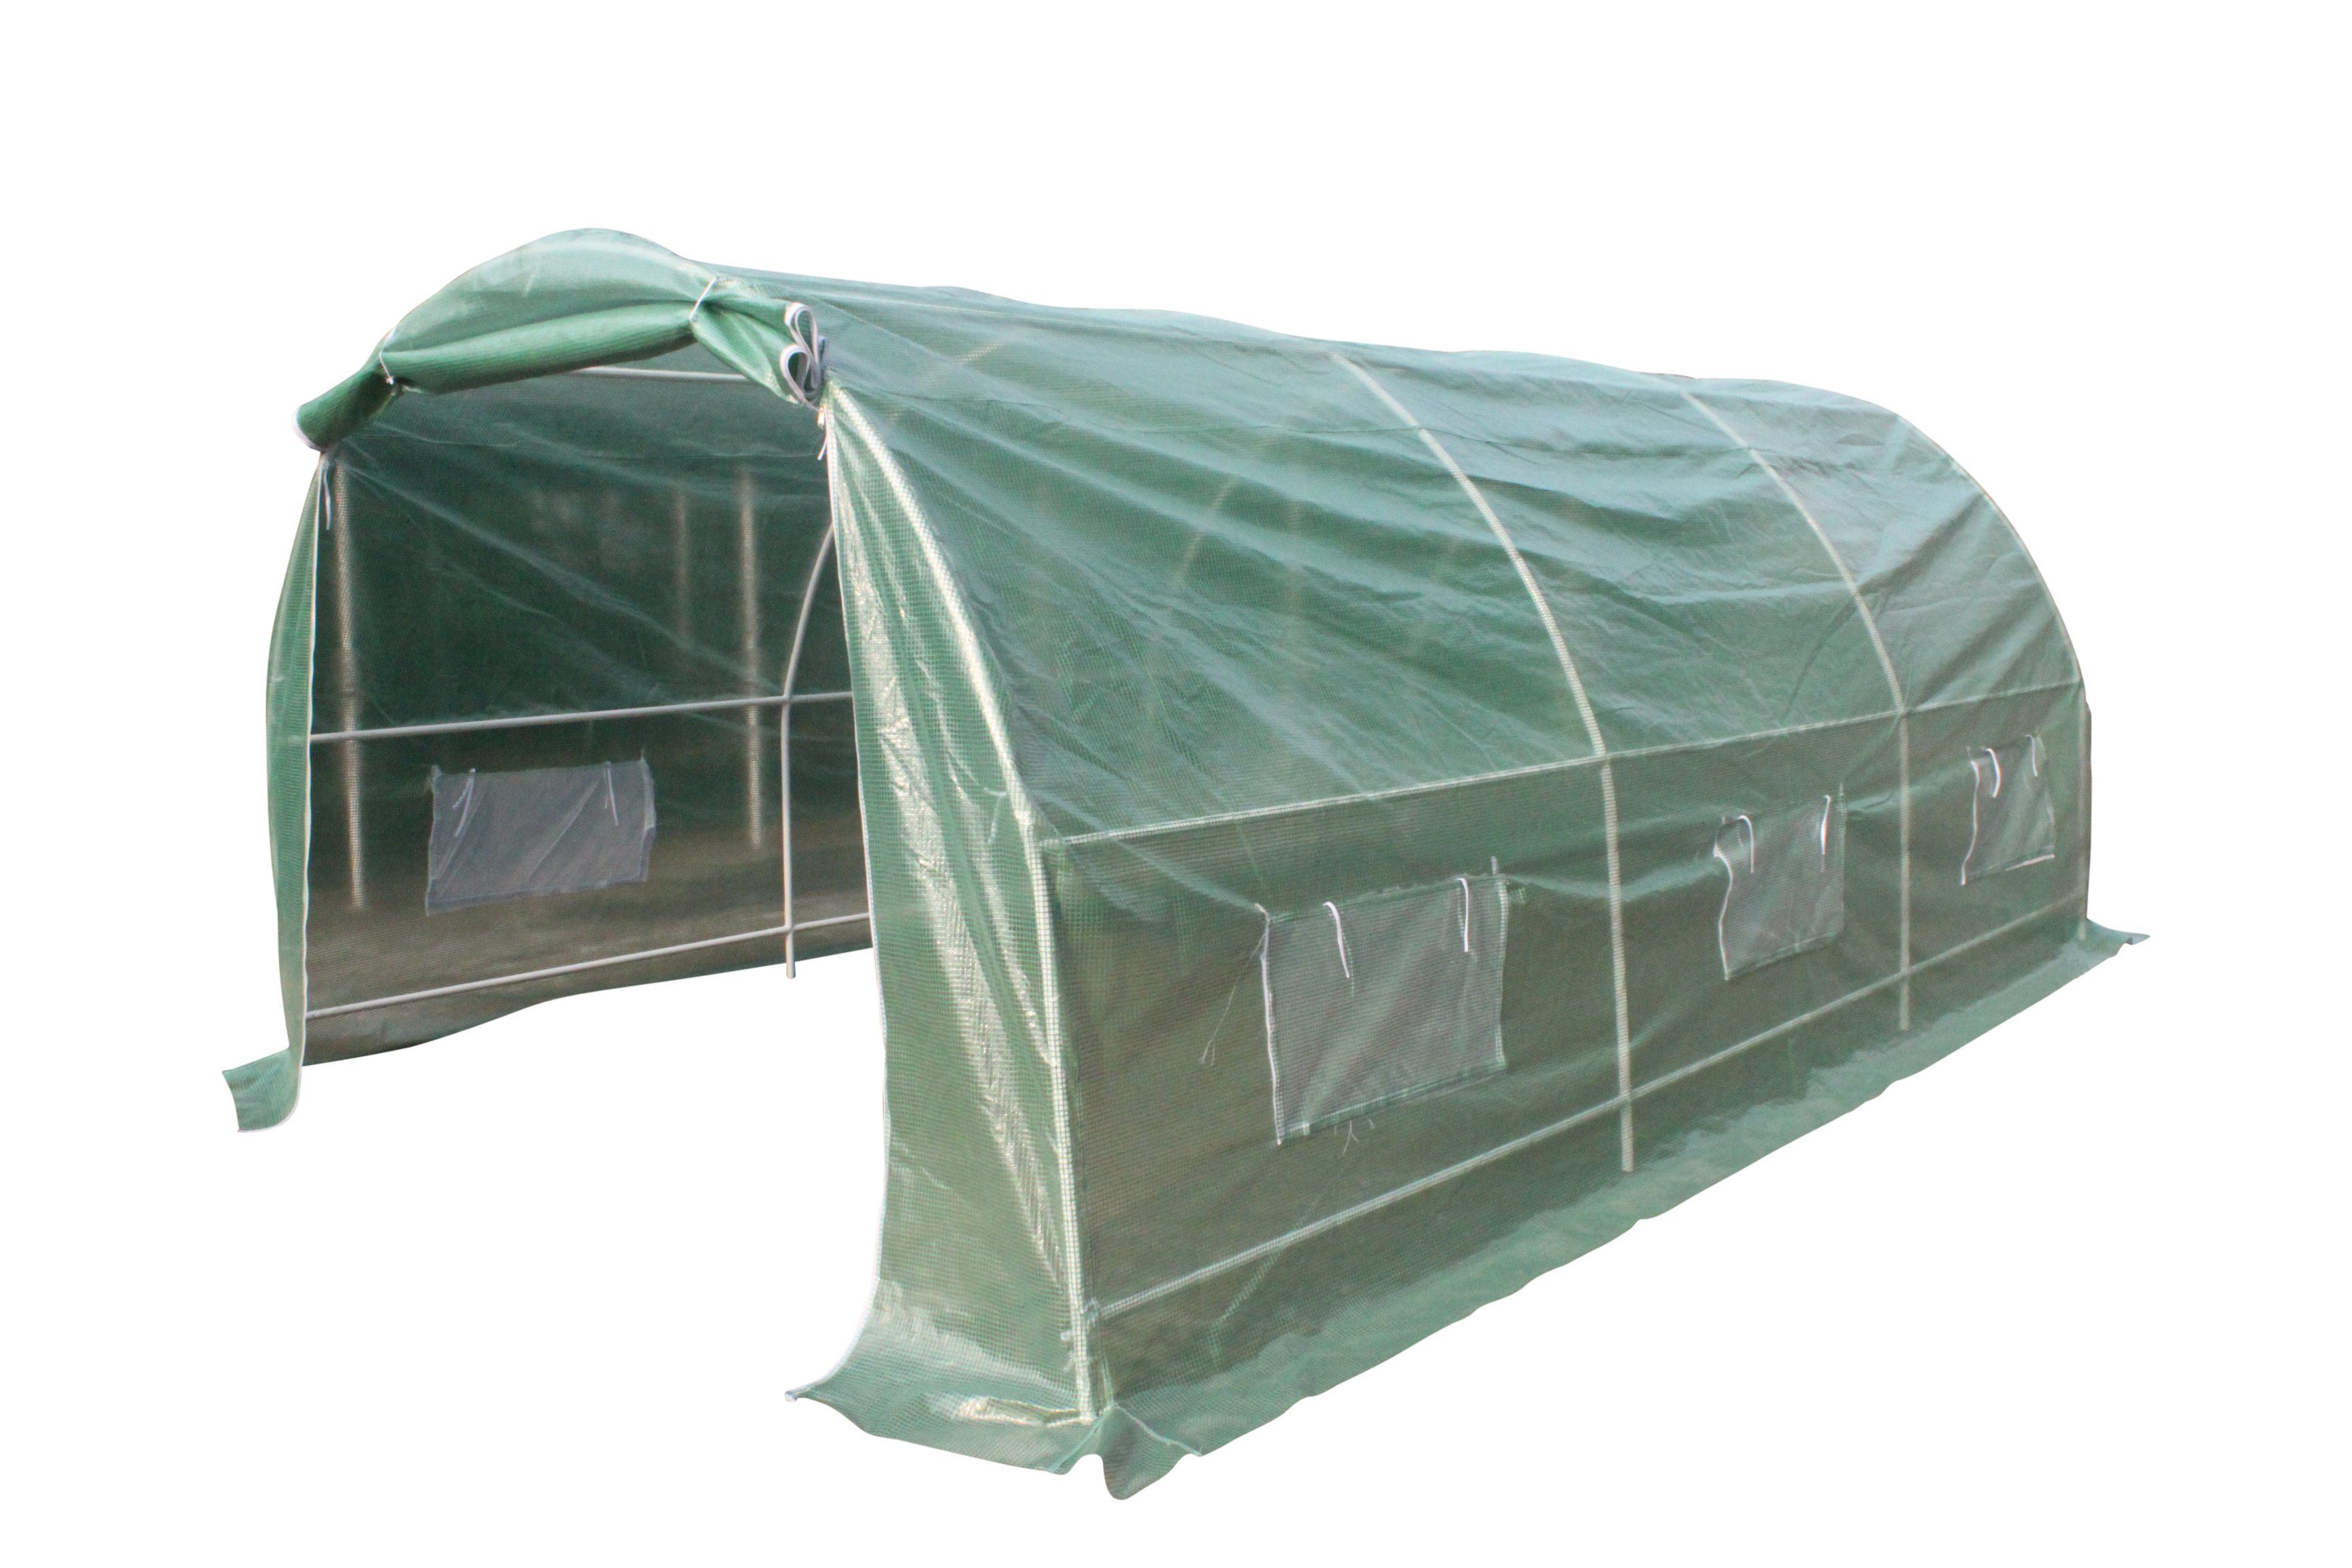 Garden Greenhouse Shed 5 x 3m  Z2550